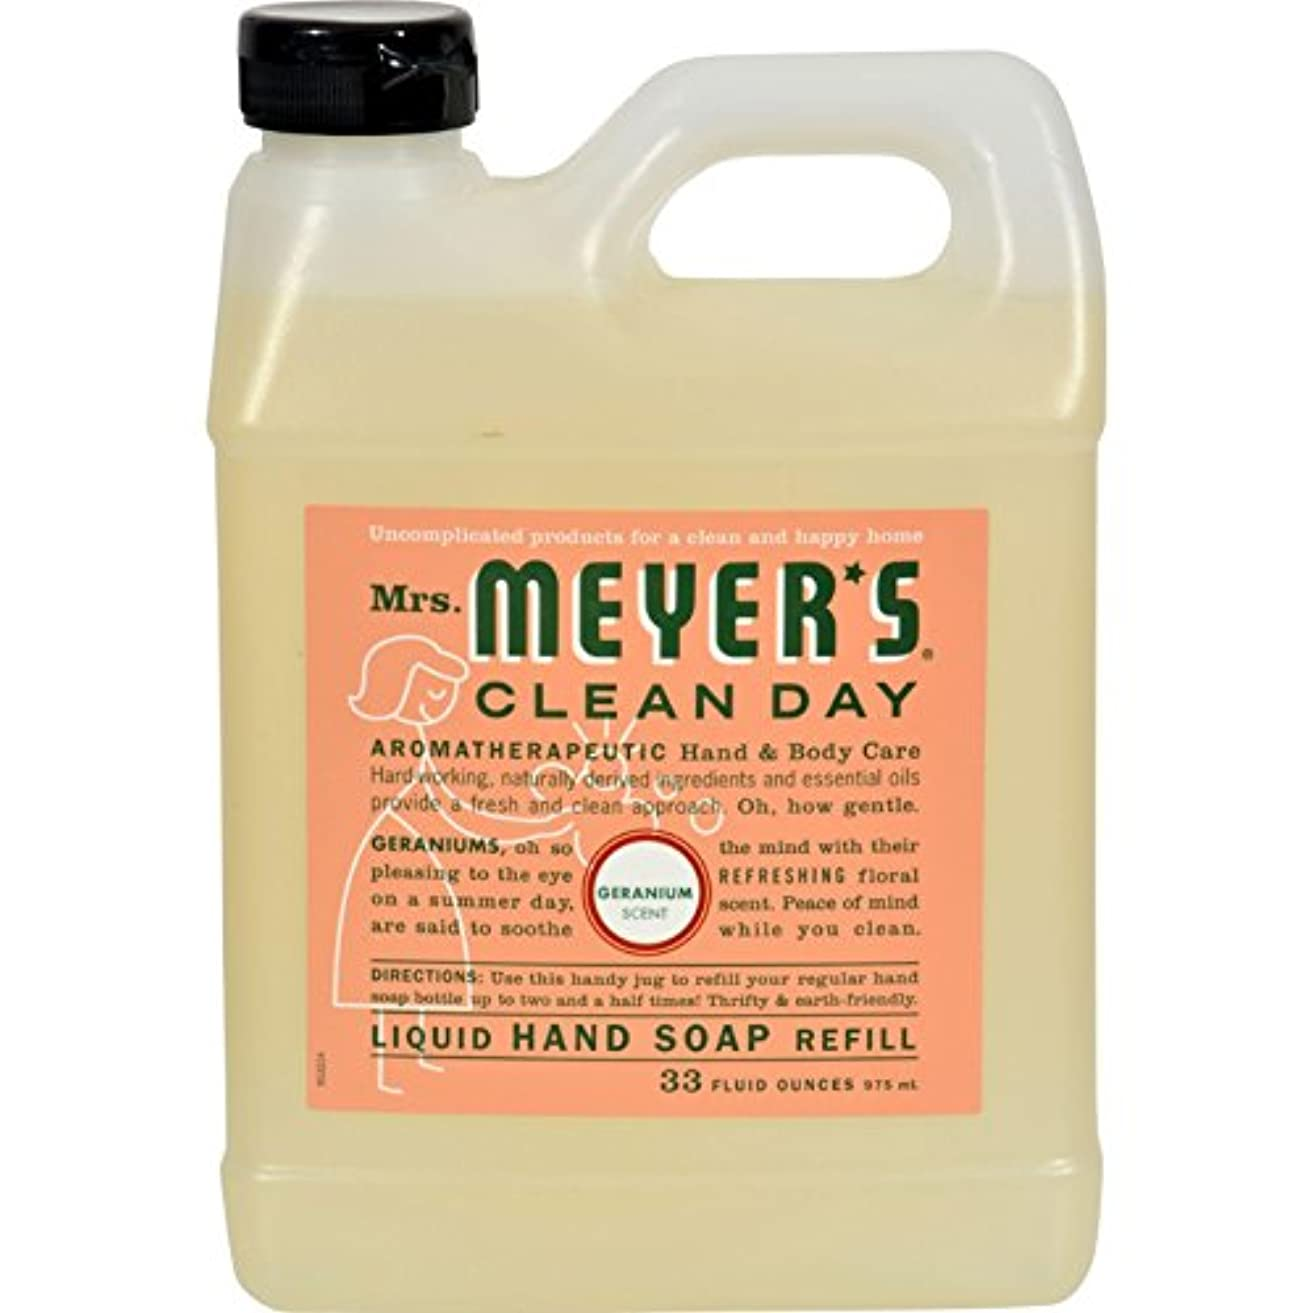 MRS. MEYER'S HAND SOAP,LIQ,REFL,GERANM, 33 FZ by Mrs. Meyers